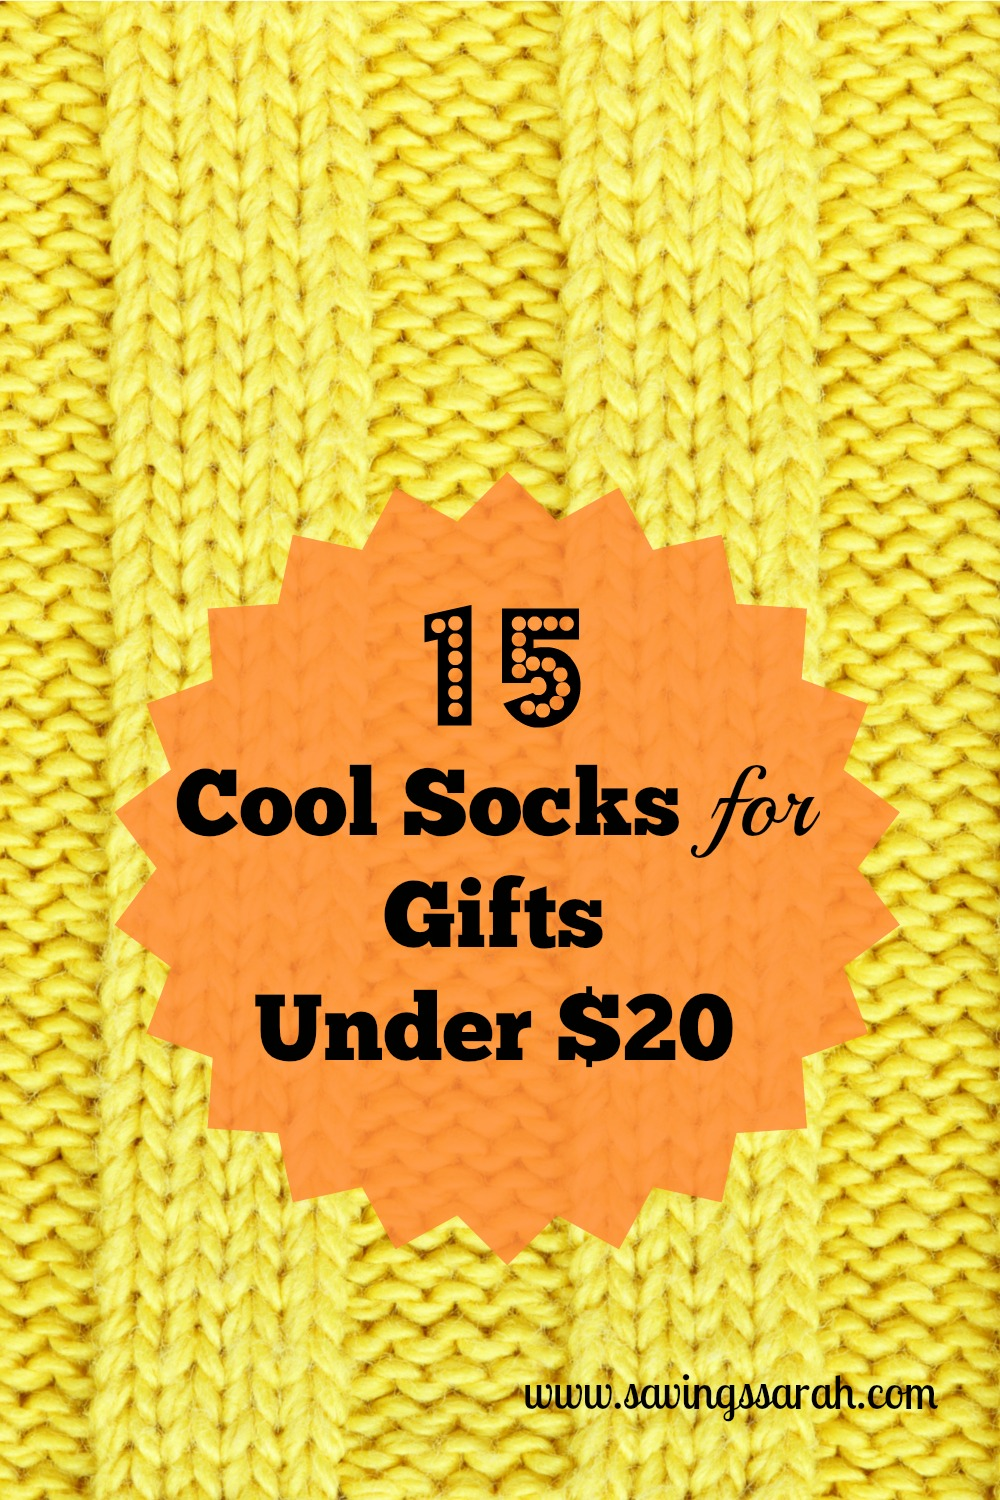 15 Cool Socks for Gifts Under $20